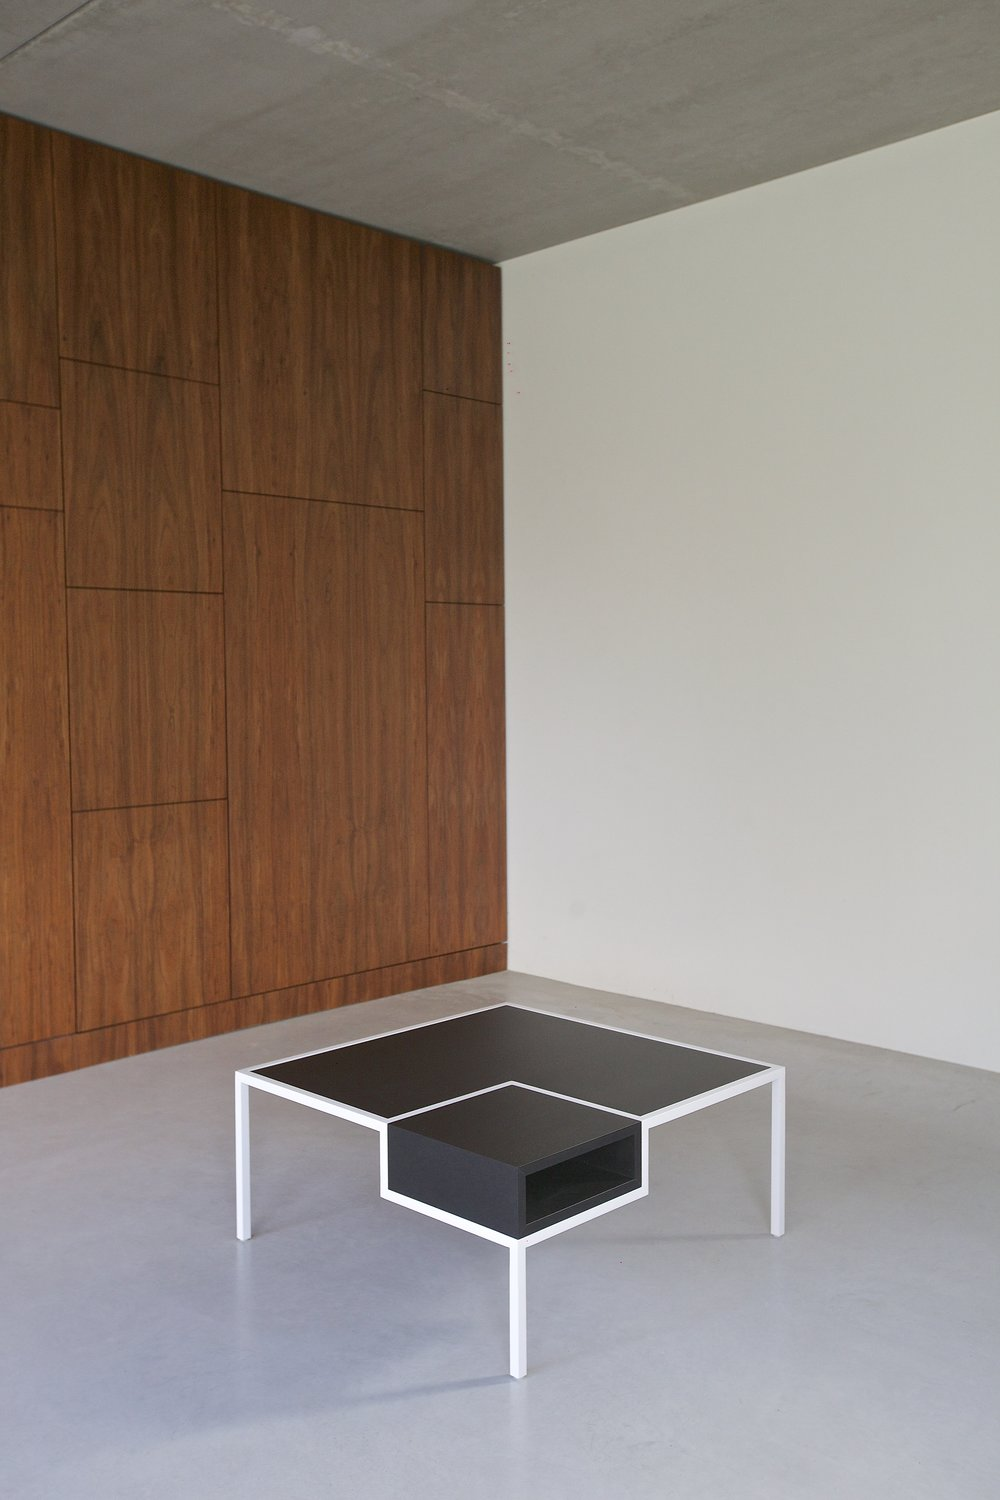 Filip Janssens LR Fusion table.jpg